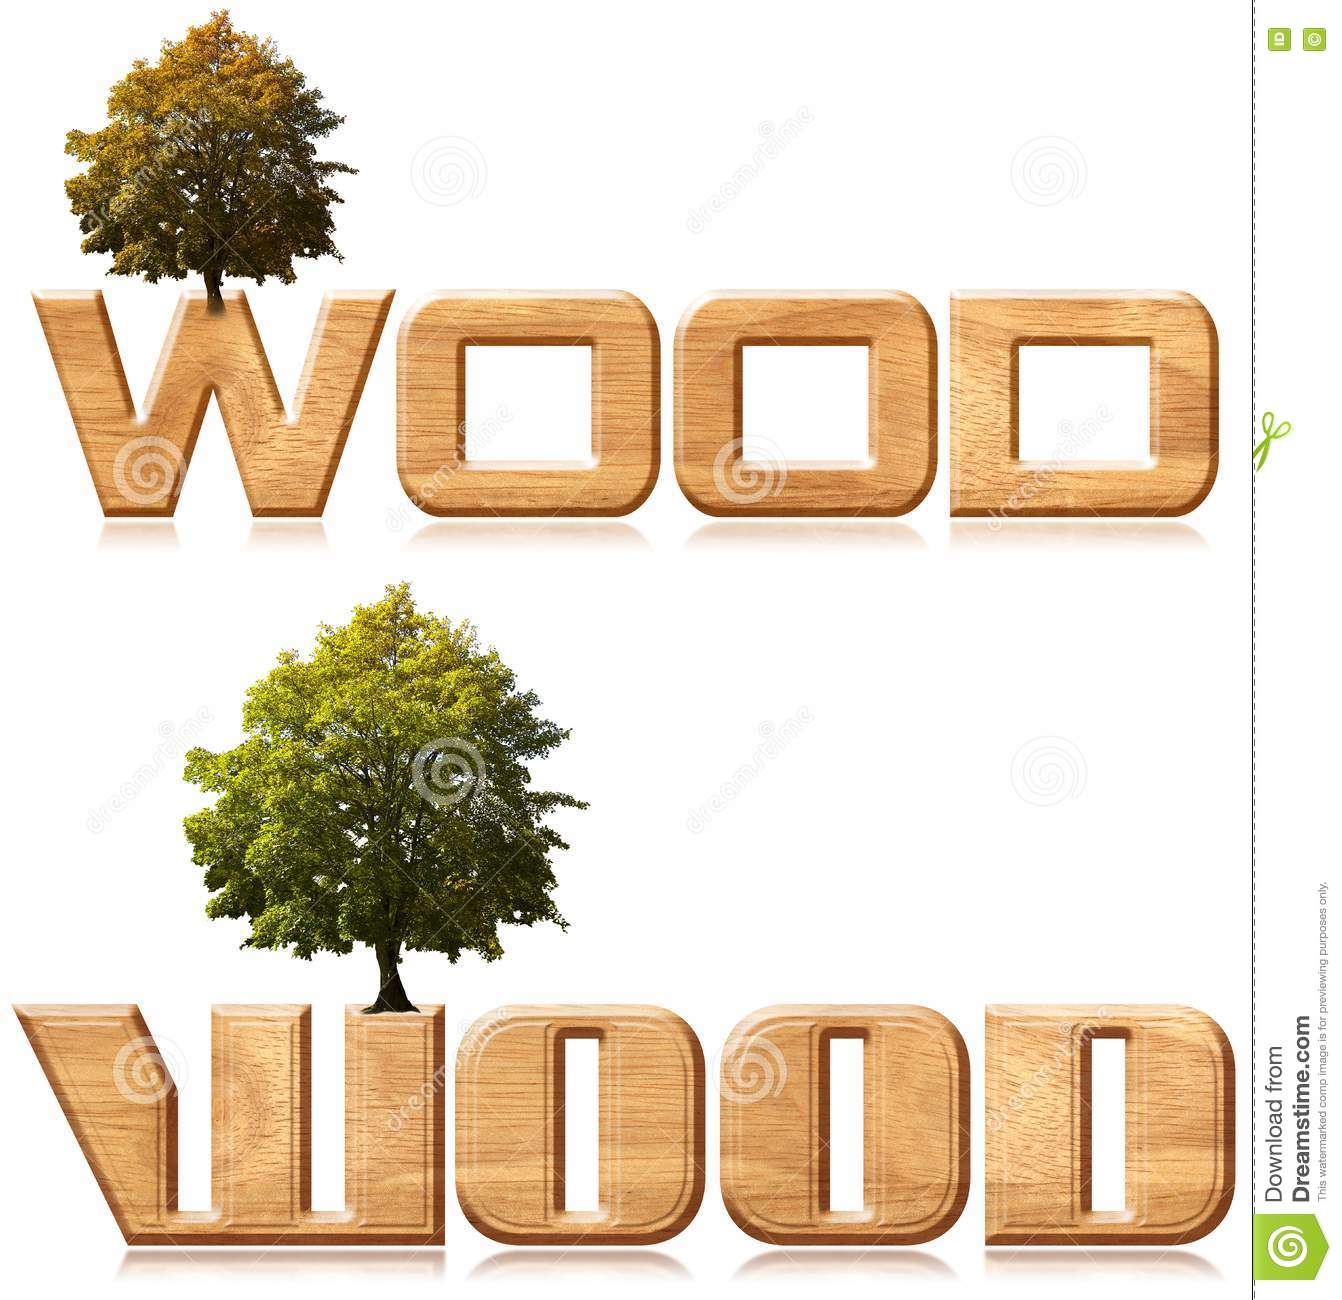 Two Words Wood In Wood Carving With Tree Royalty Free Stock Photo - Image: 21986875